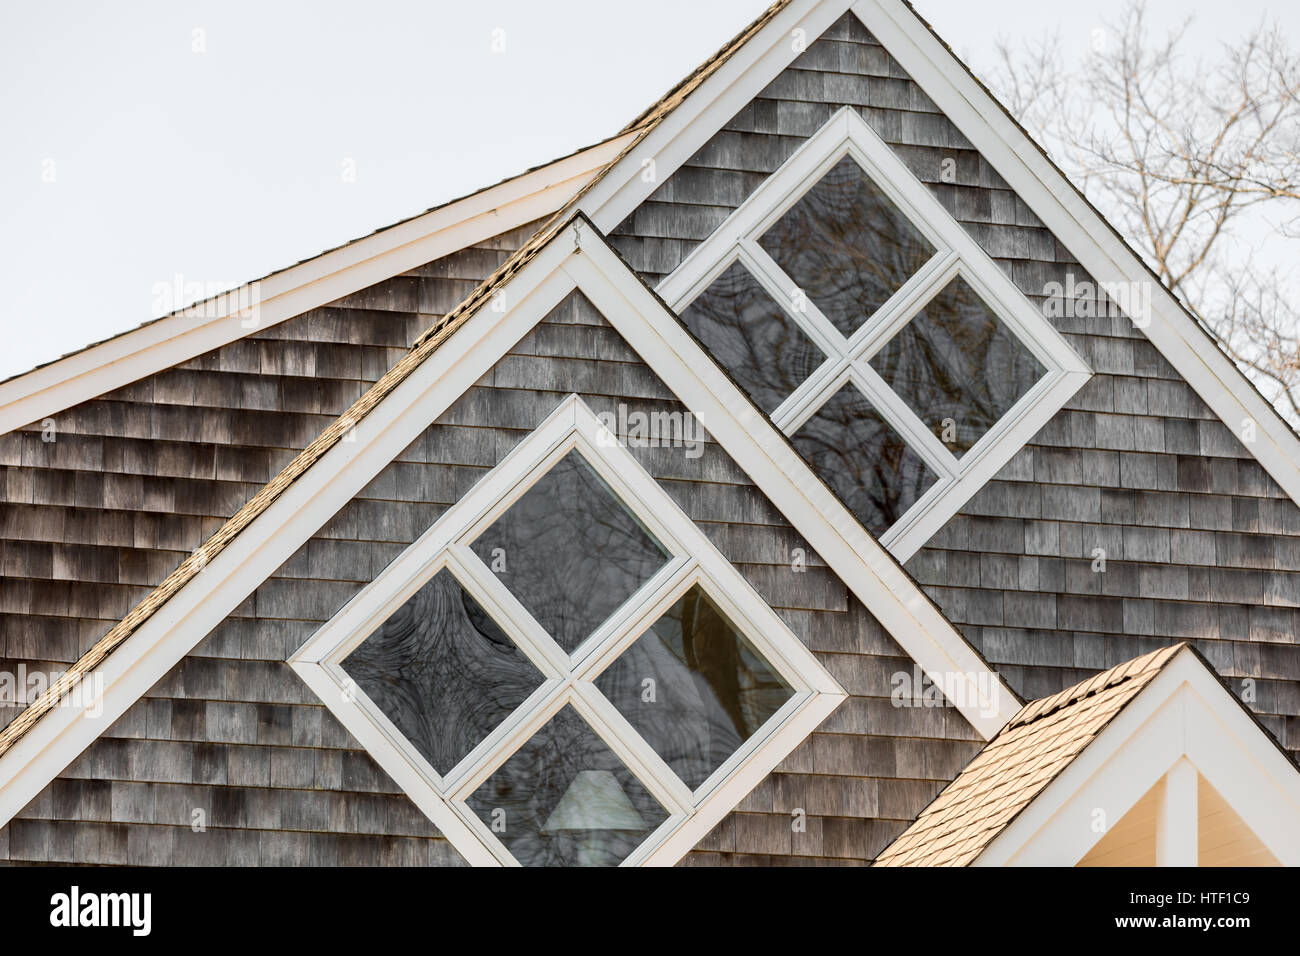 two square windows with four panes each on a home - Stock Image